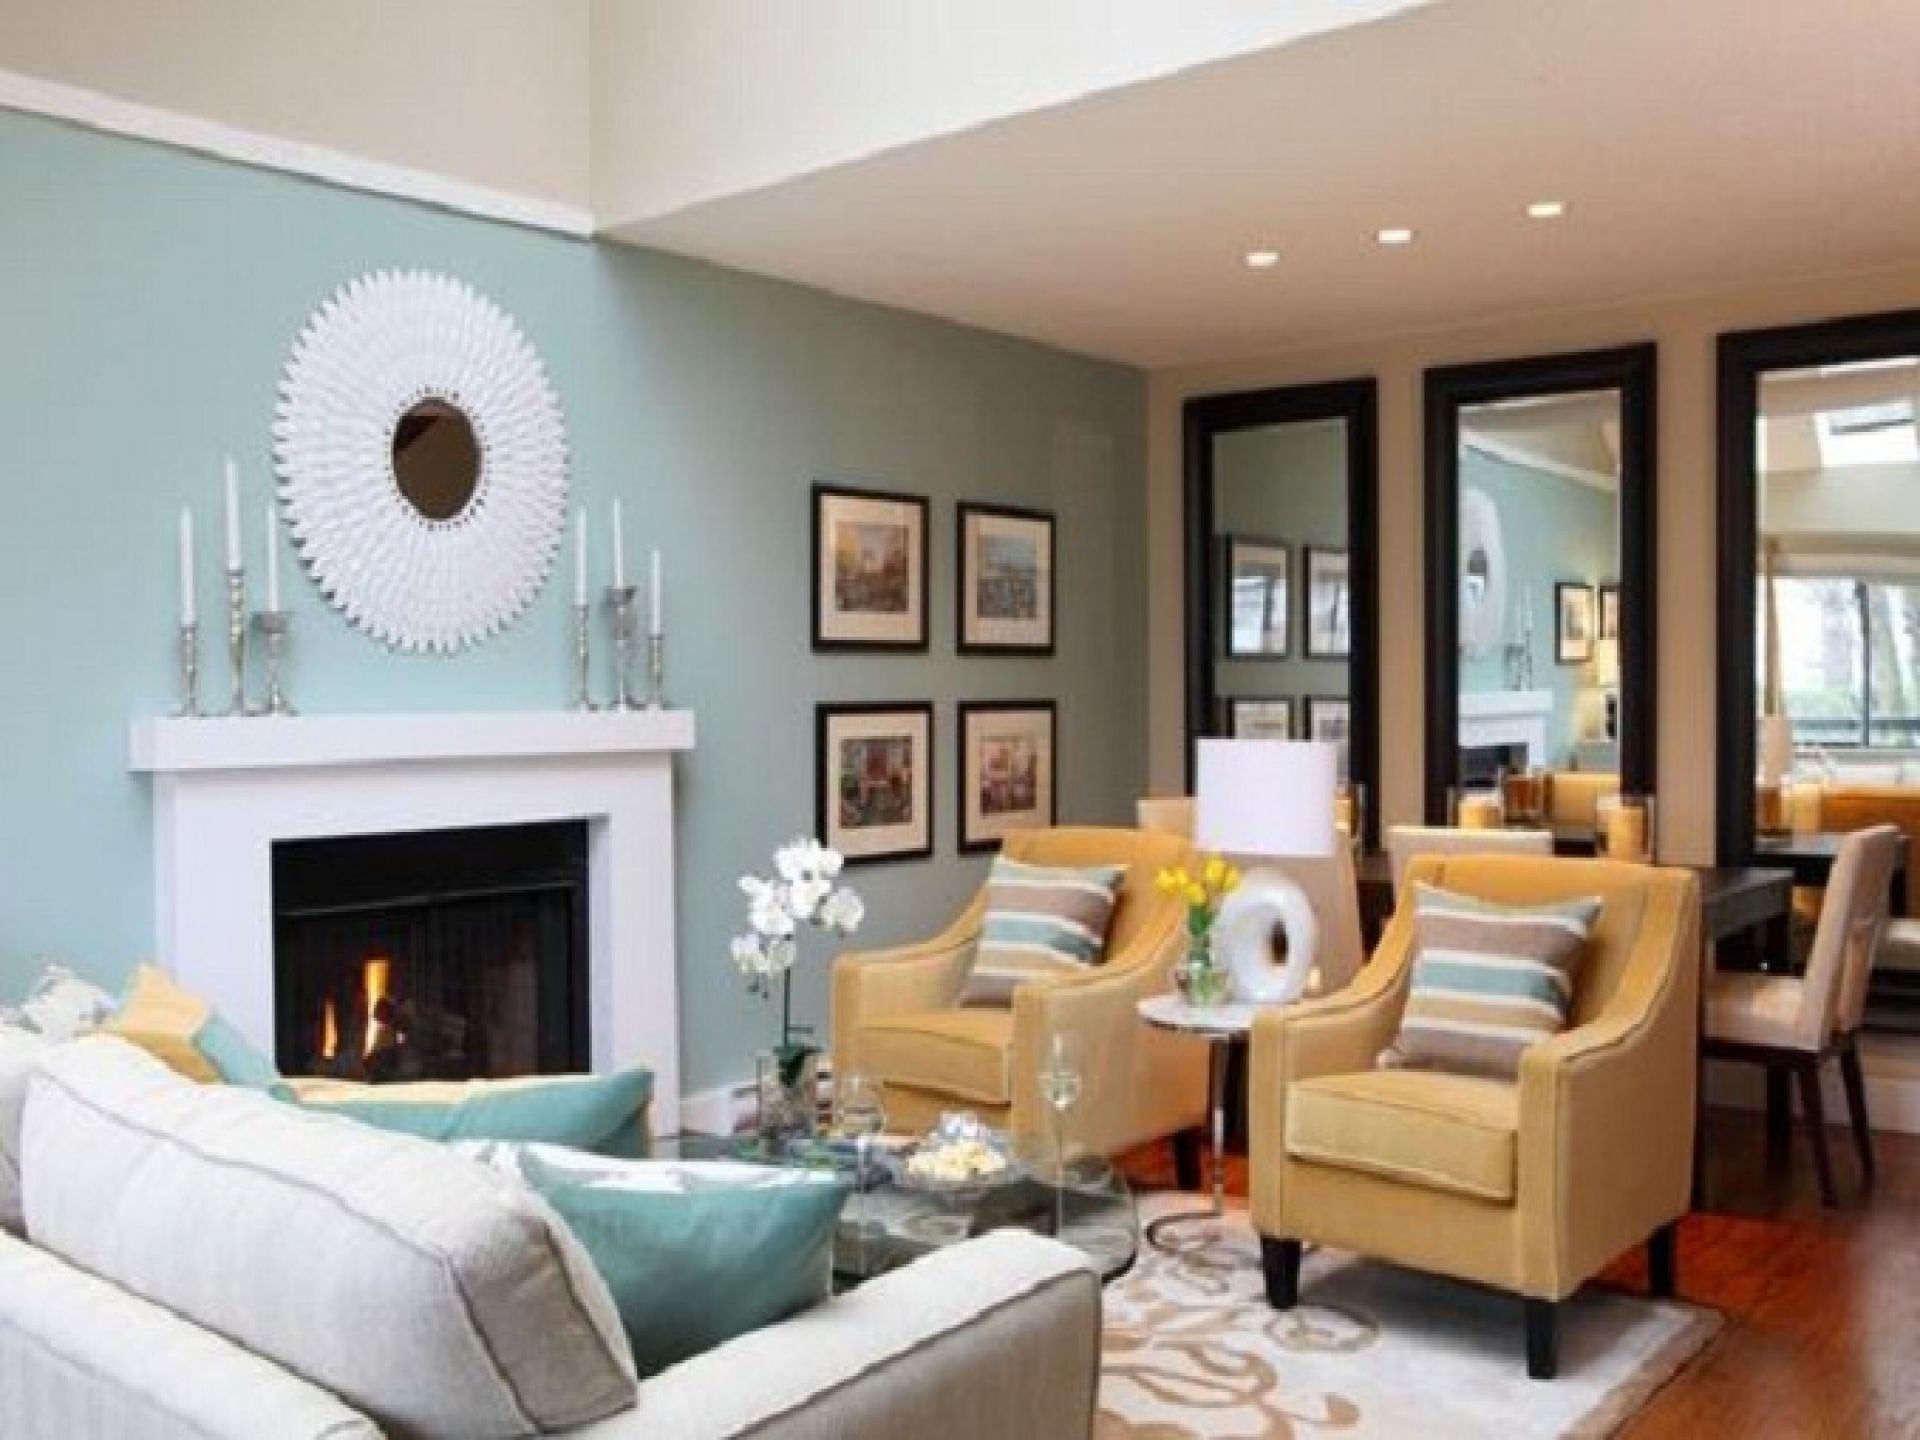 Sophisticated Living Room Color Schemes Ideas: Creative White Modern  Fireplace Mantle And Midcentury Living Couch And Soft Blue Living Room  Color Schemes ...